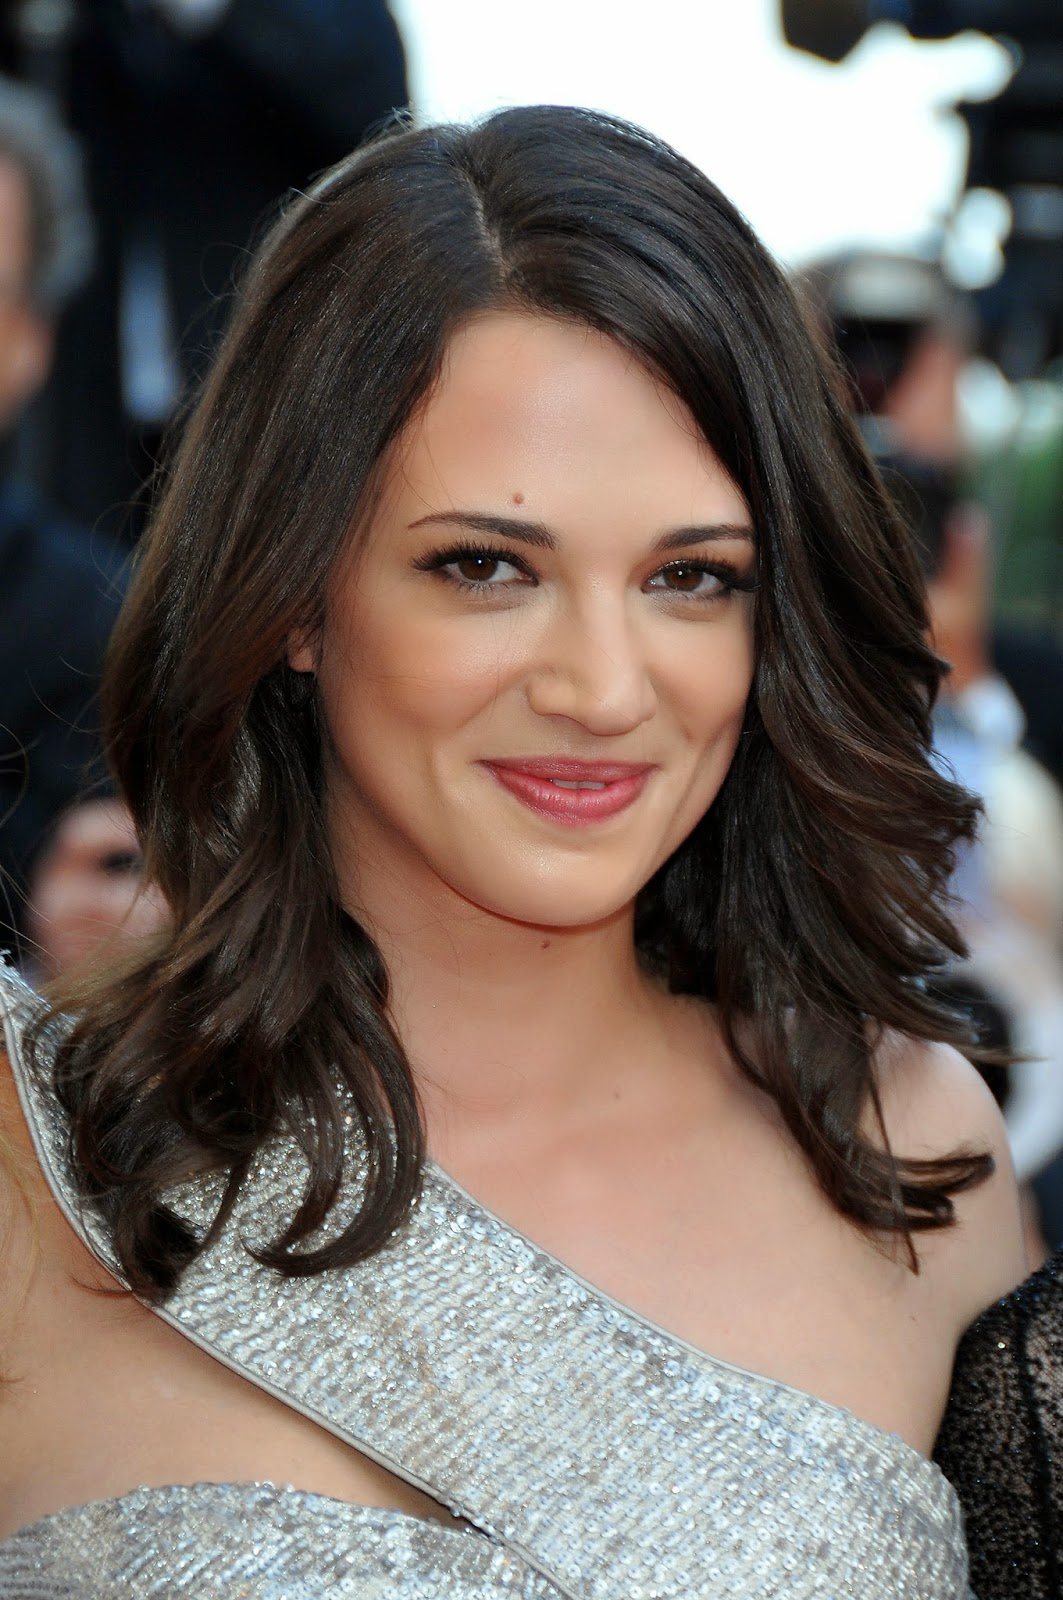 Hollywood Actress Wallpaper: Asia Argento HD Wallpapers